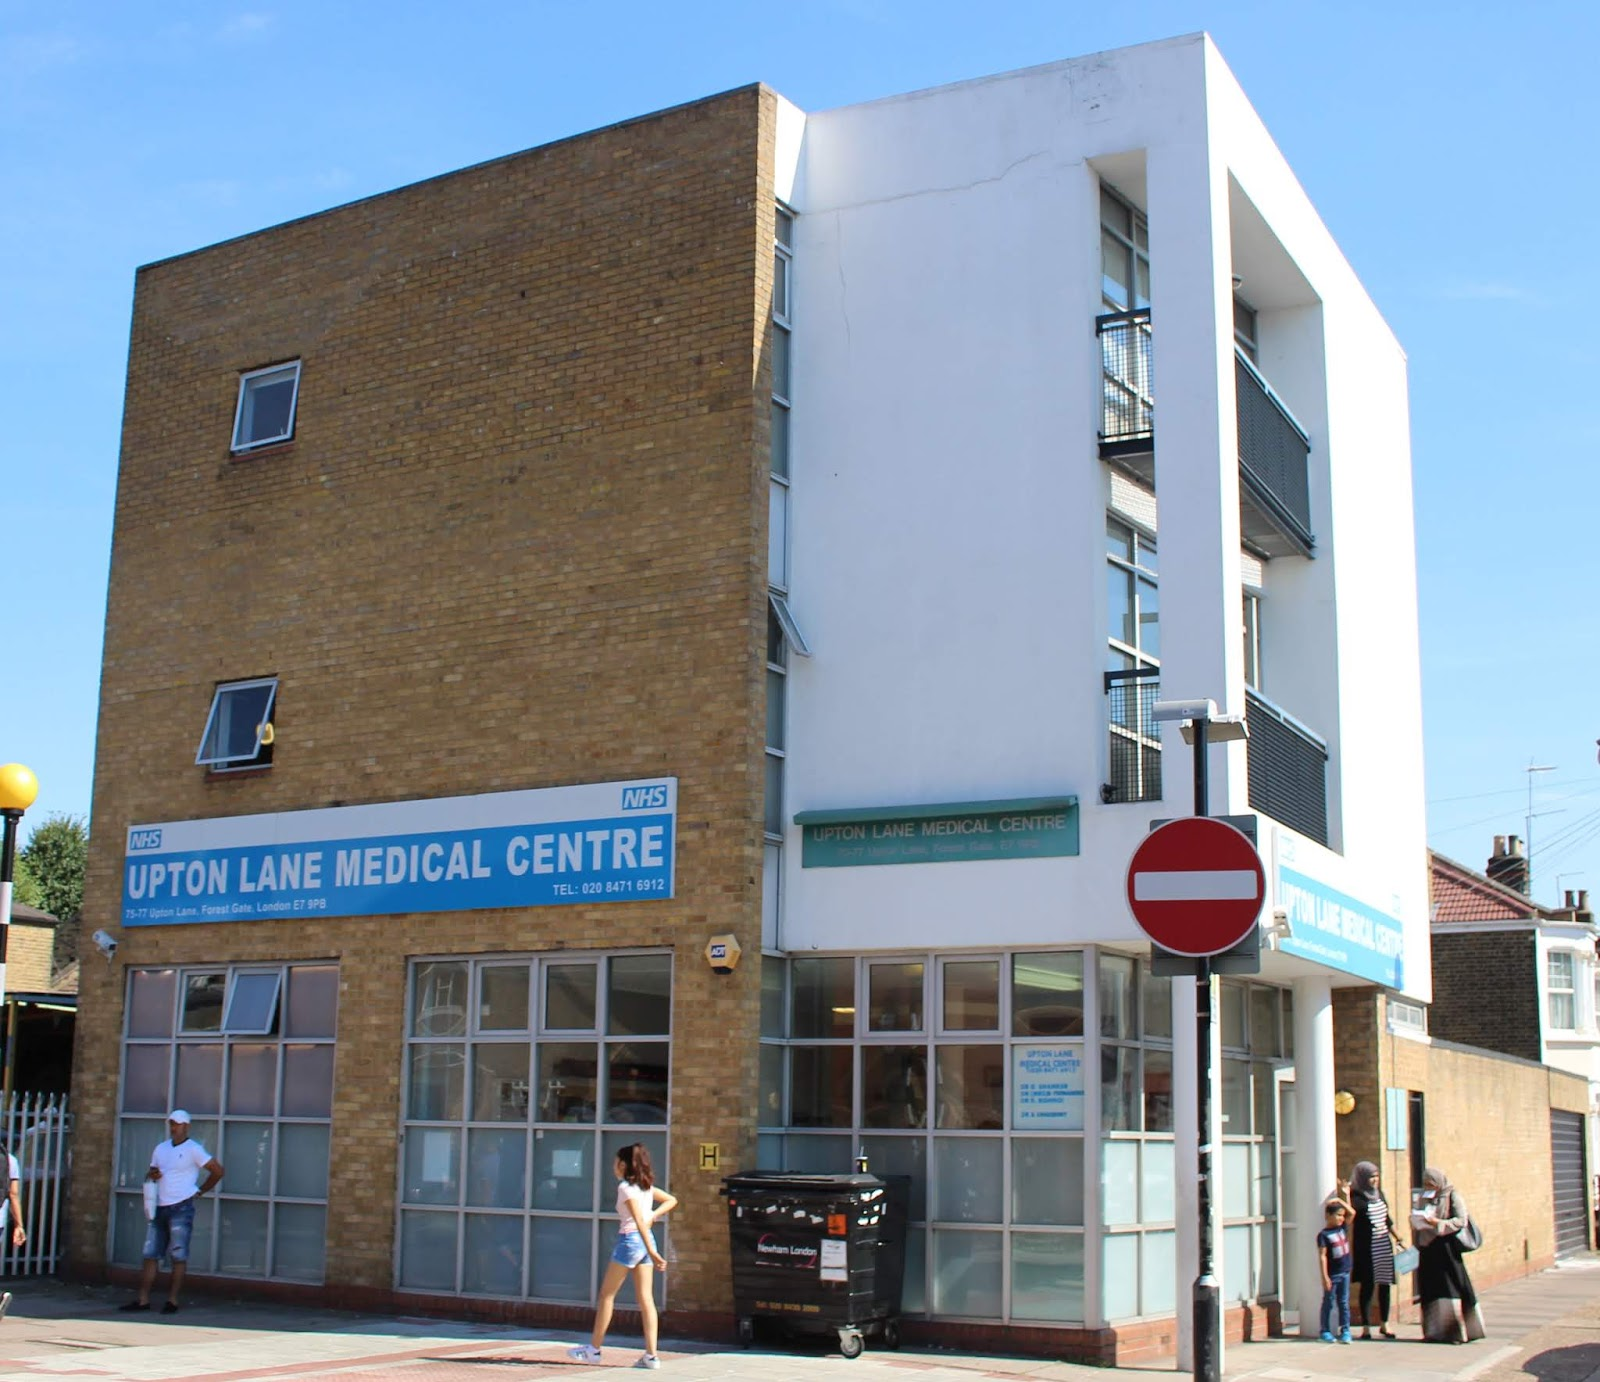 New Medical Centre In Upton Lane With Poor Recommendation Rating